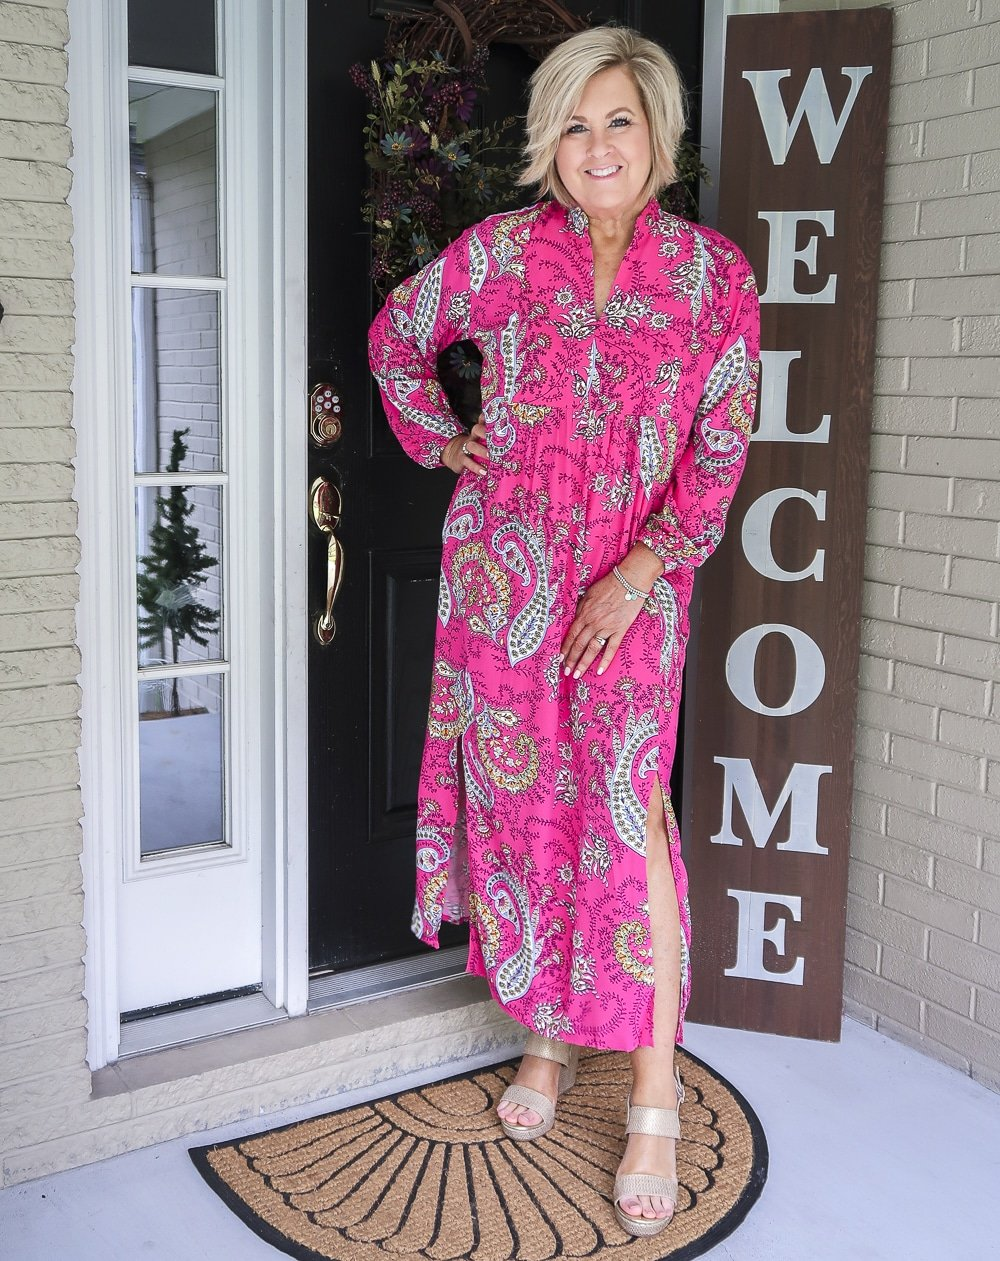 Fashion Blogger 50 Is Not Old is wearing a bright pink paisley midi dress with a side slit and gold espadrille sandals